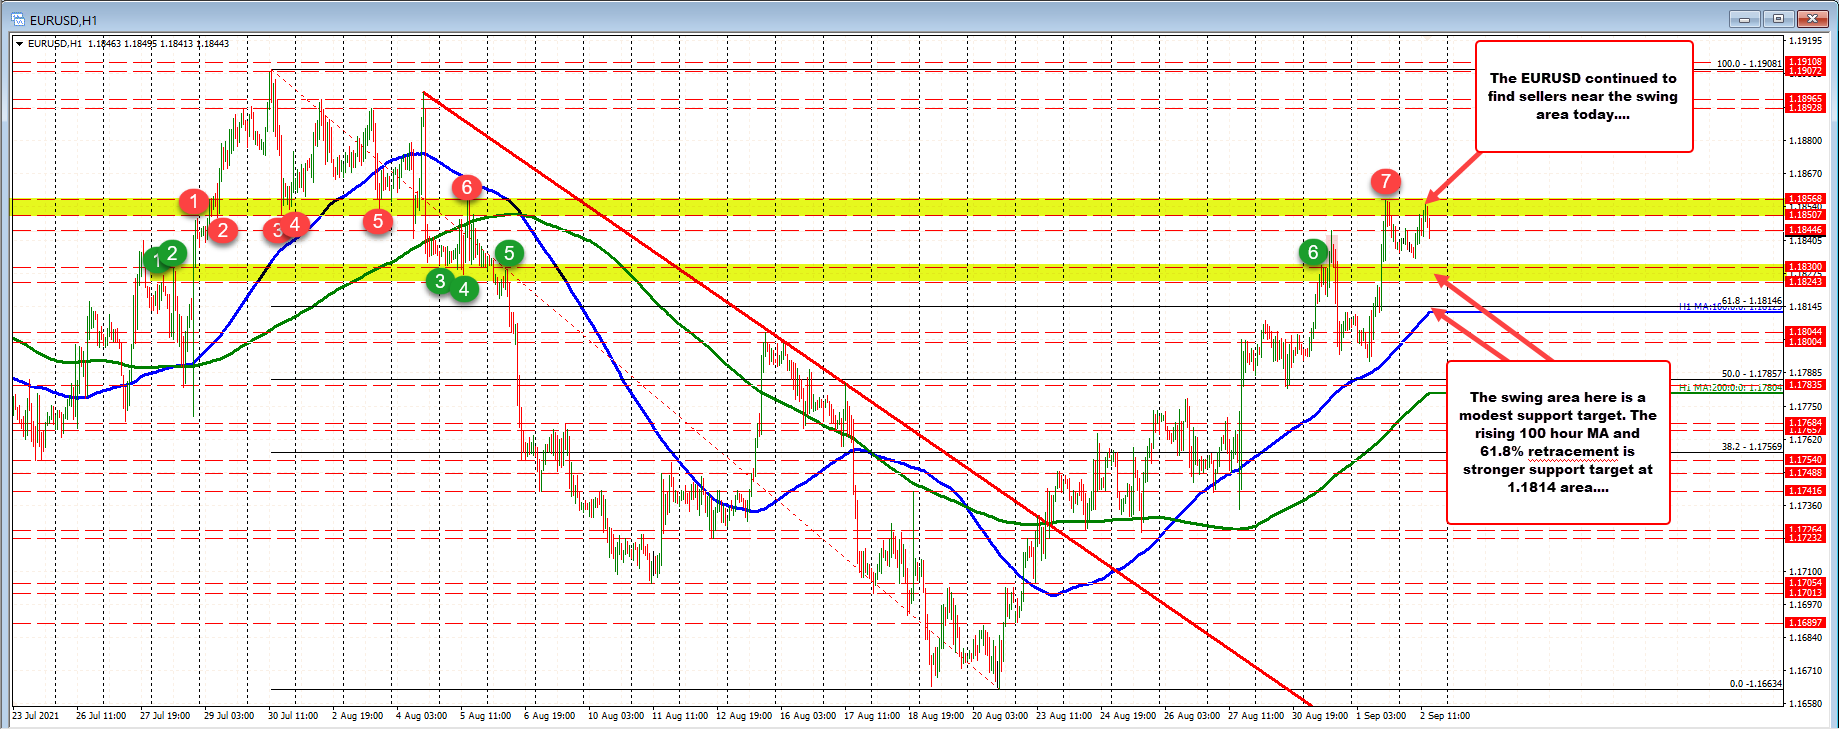 EURUSD backs off from the upside resistance for the second consecutive day